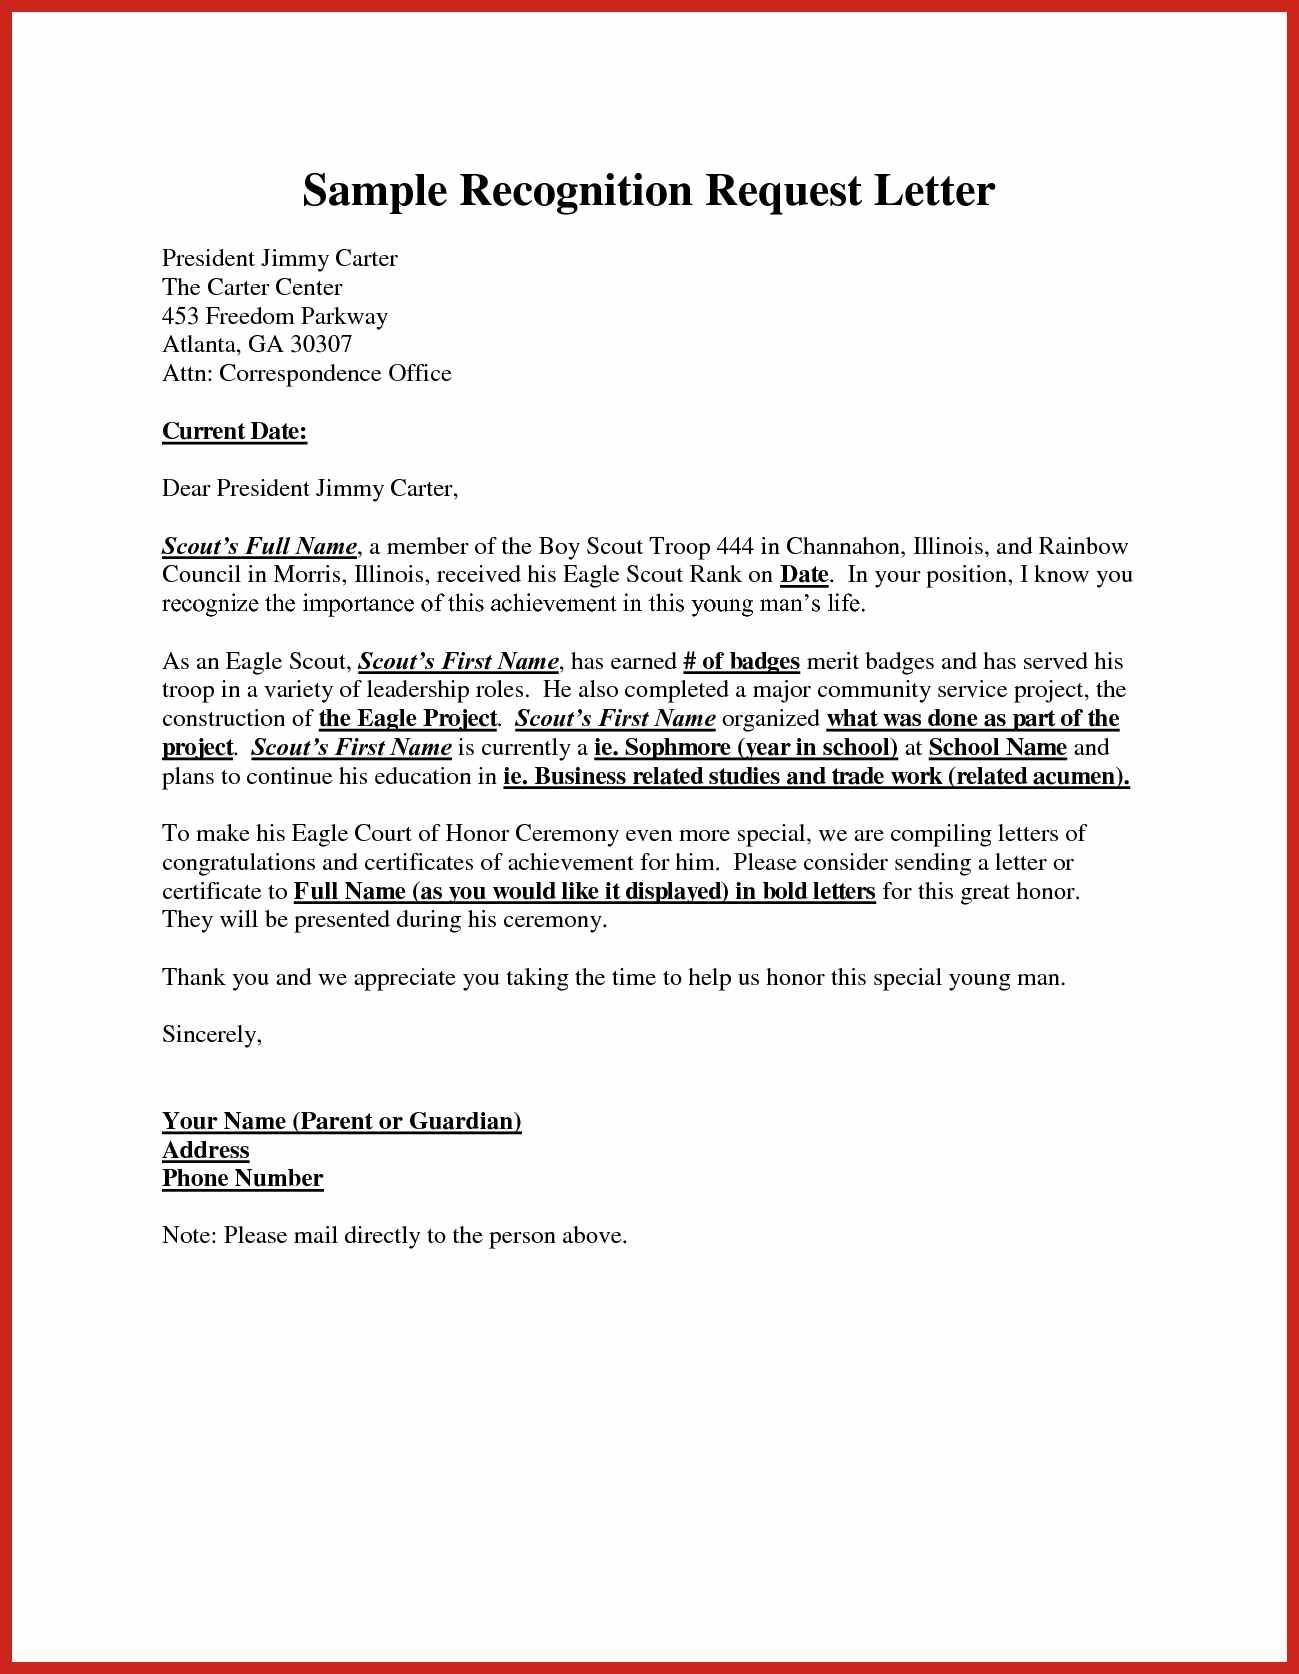 Eagle Scout Sample Letter To Request Congrats  Sample Letter Of